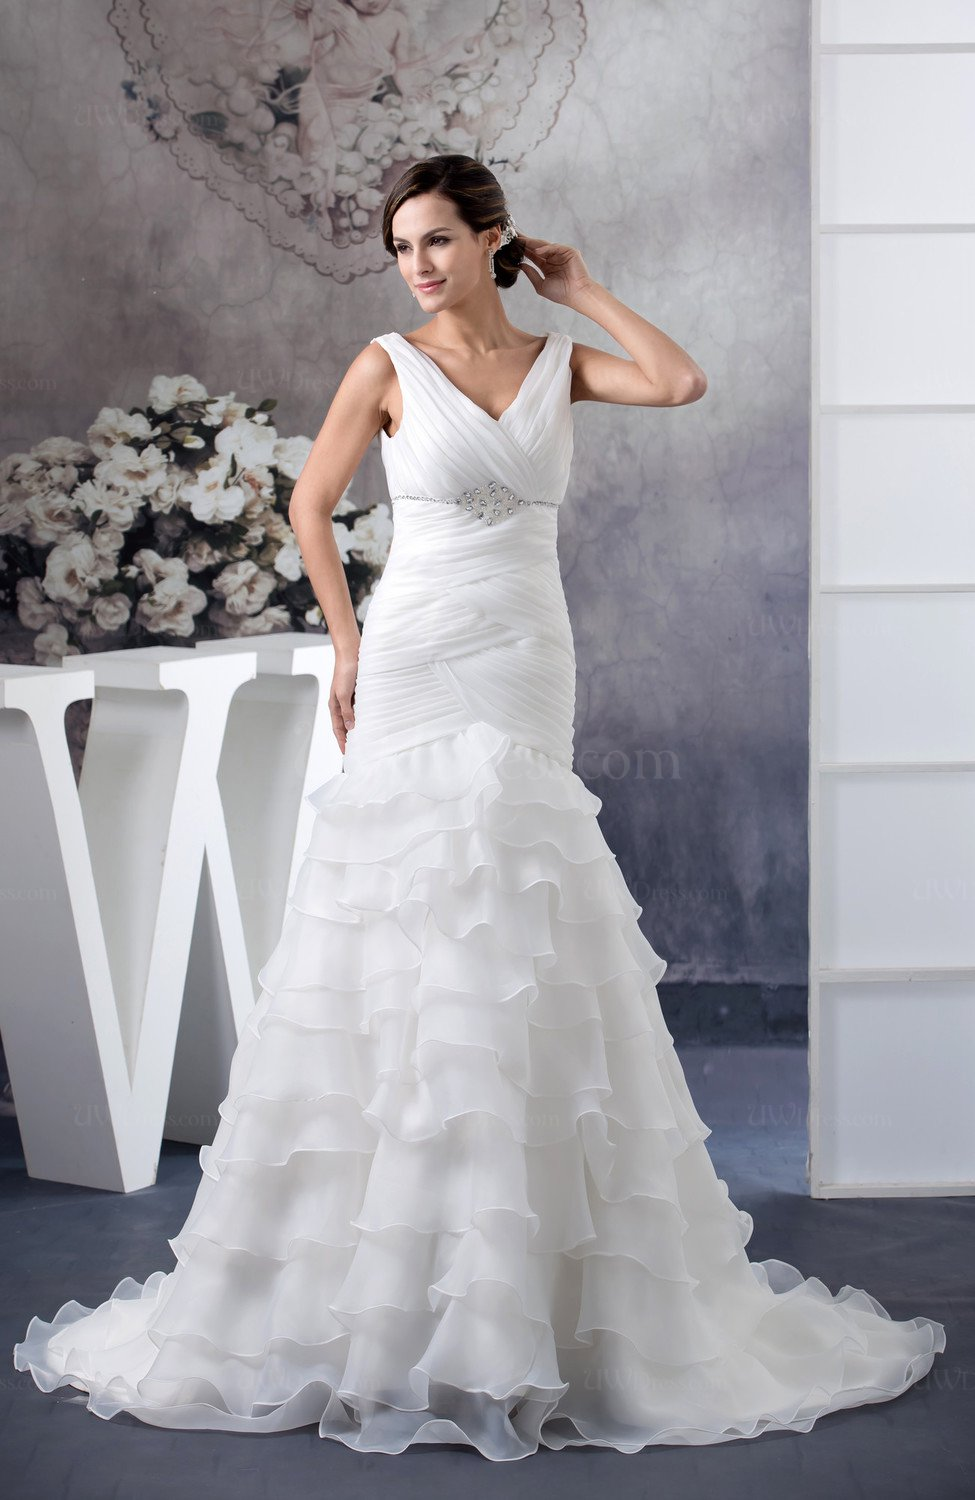 Gowns Brides Of California Features 22